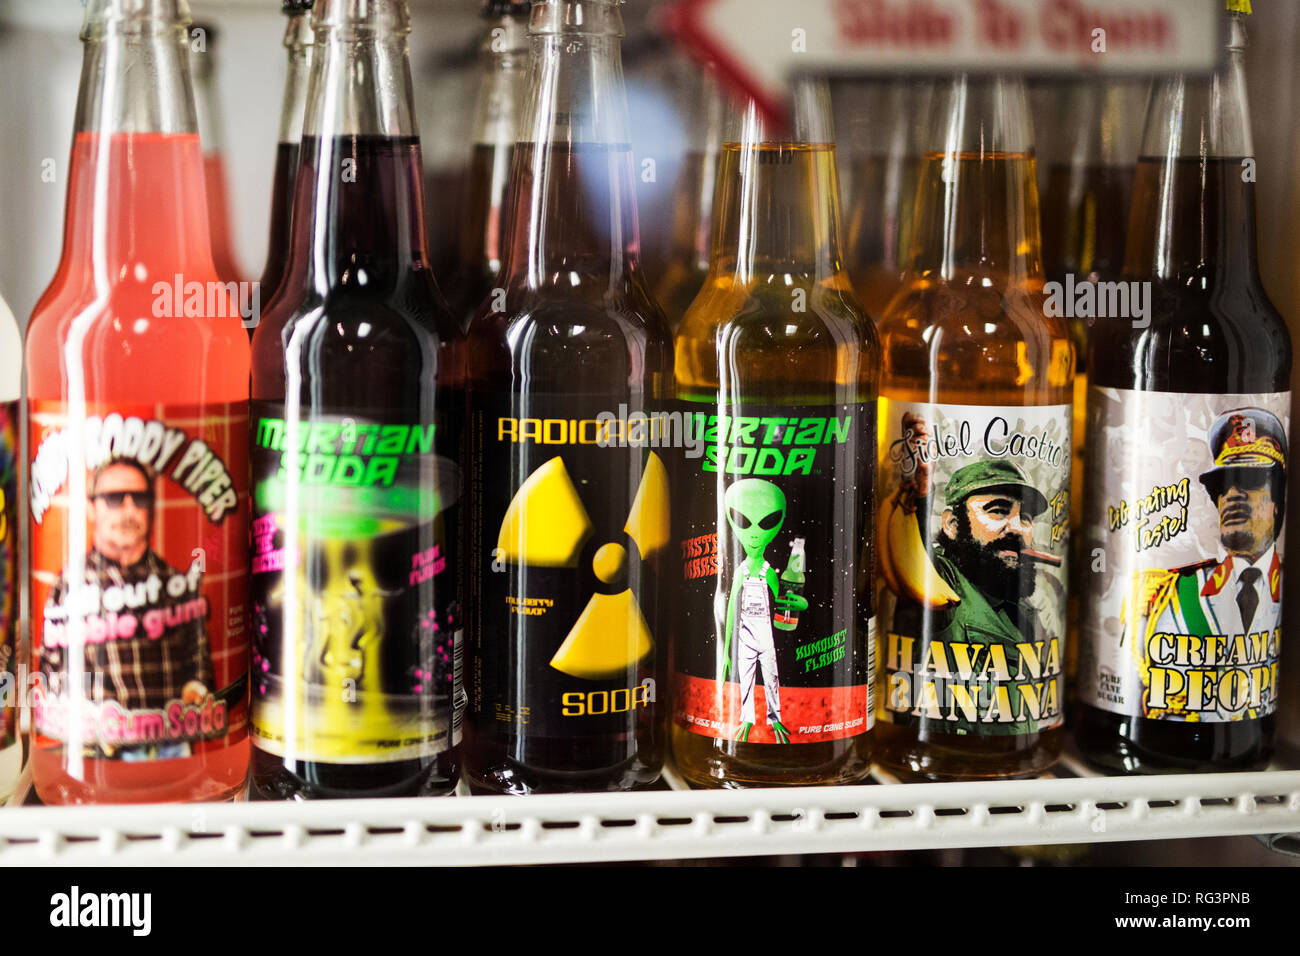 Unusual sodas for sale in glass bottles in a shop in Indianapolis, Indiana, USA. - Stock Image